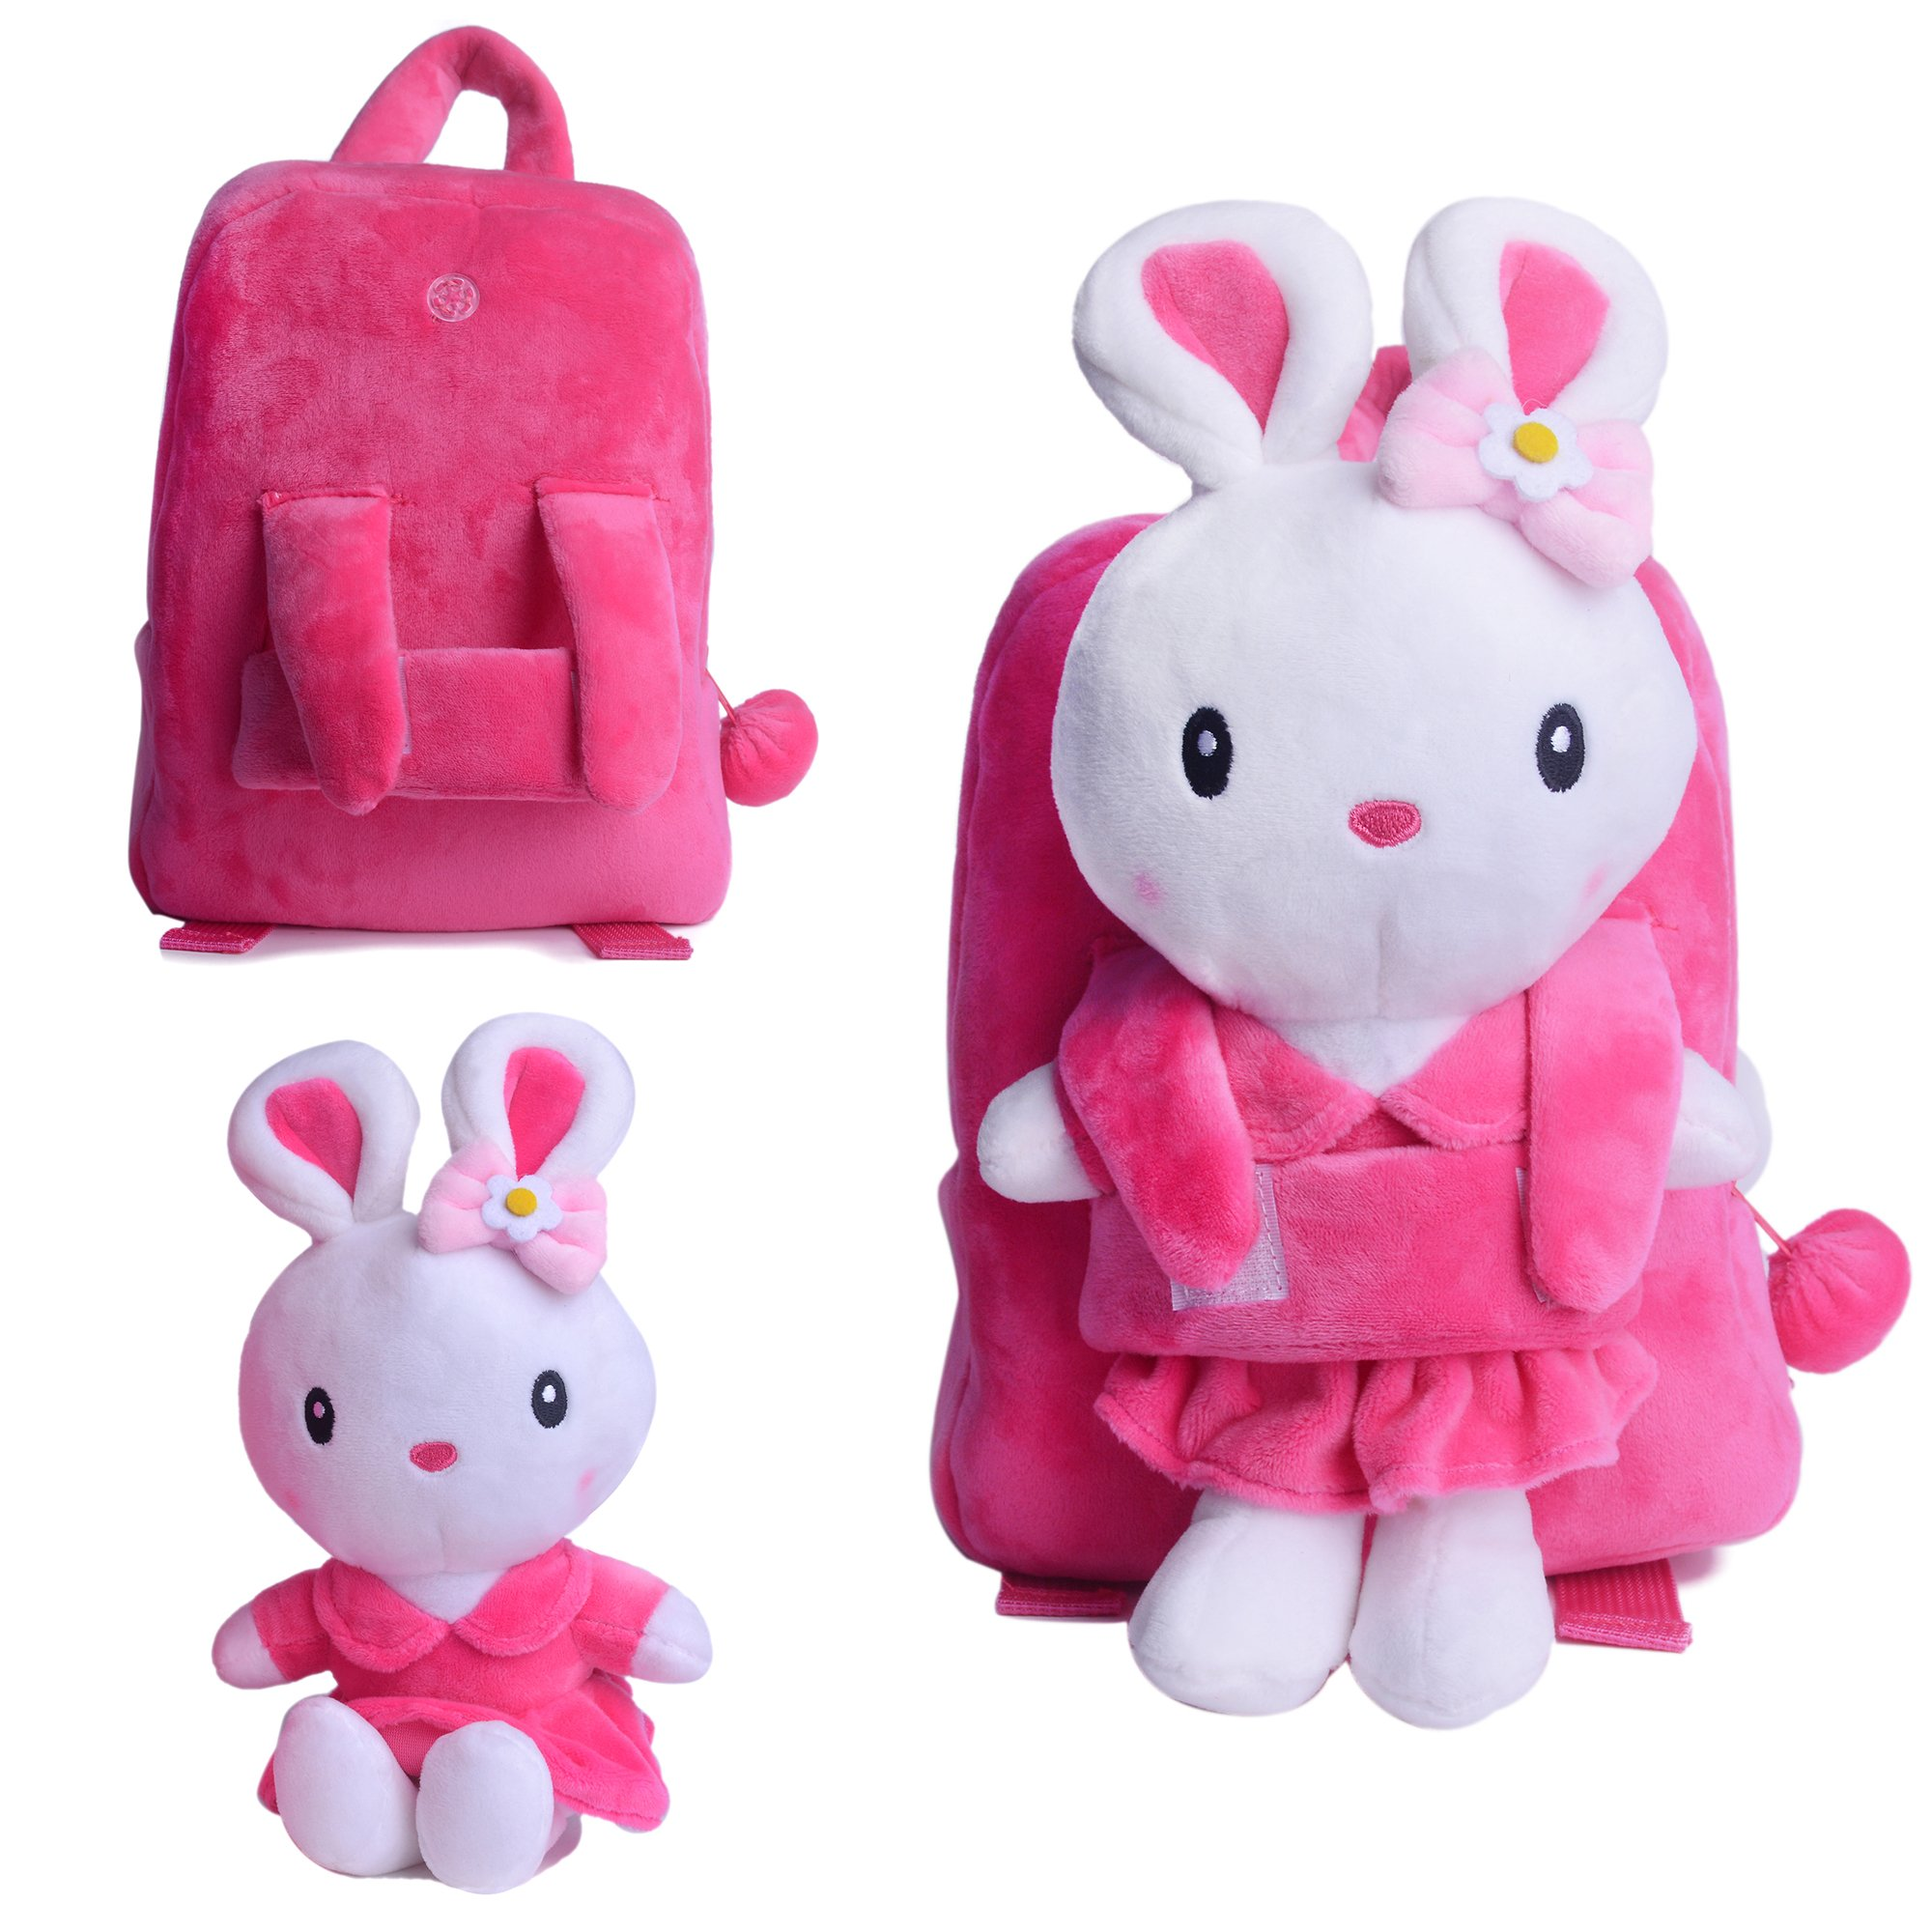 Gloveleya Bunny Rabbit Plush Kid's Backpack Shoulder Bags Easter Gifts 8'' for Kids Under 5 Years Old